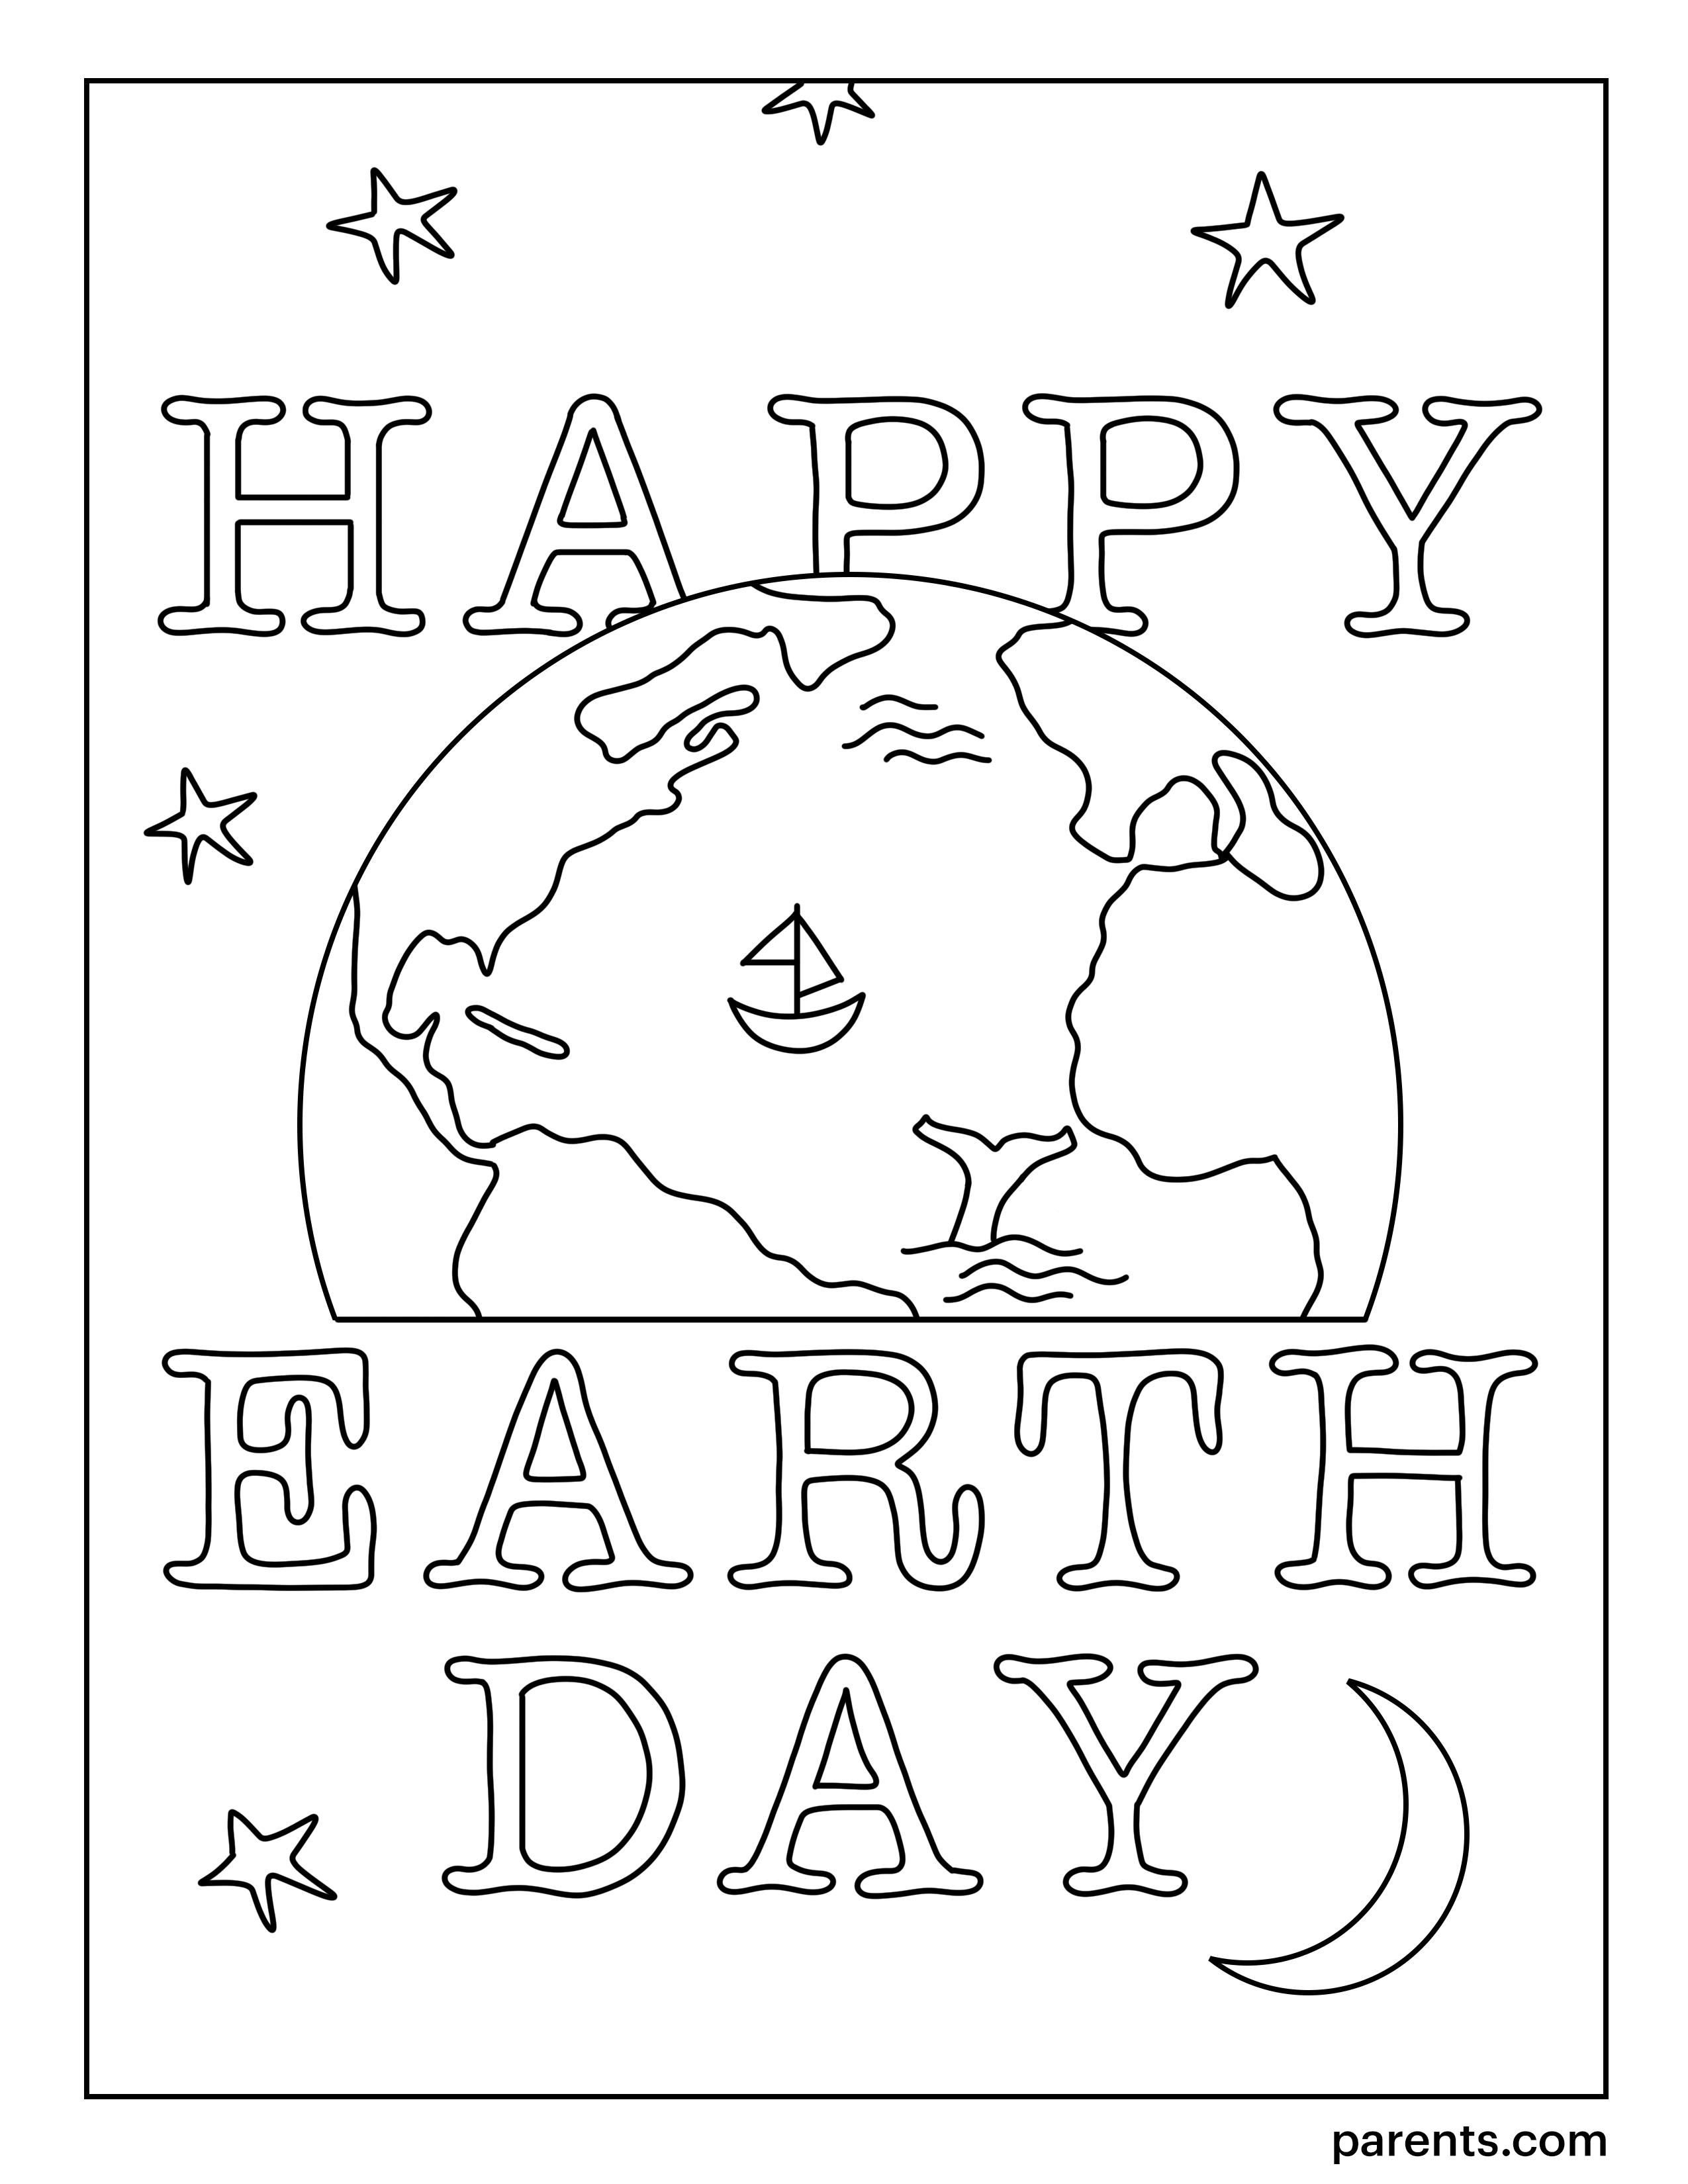 10 Free Earth Day Coloring Pages For Kids In 2021 Earth Day Coloring Pages Love Coloring Pages Coloring Pages